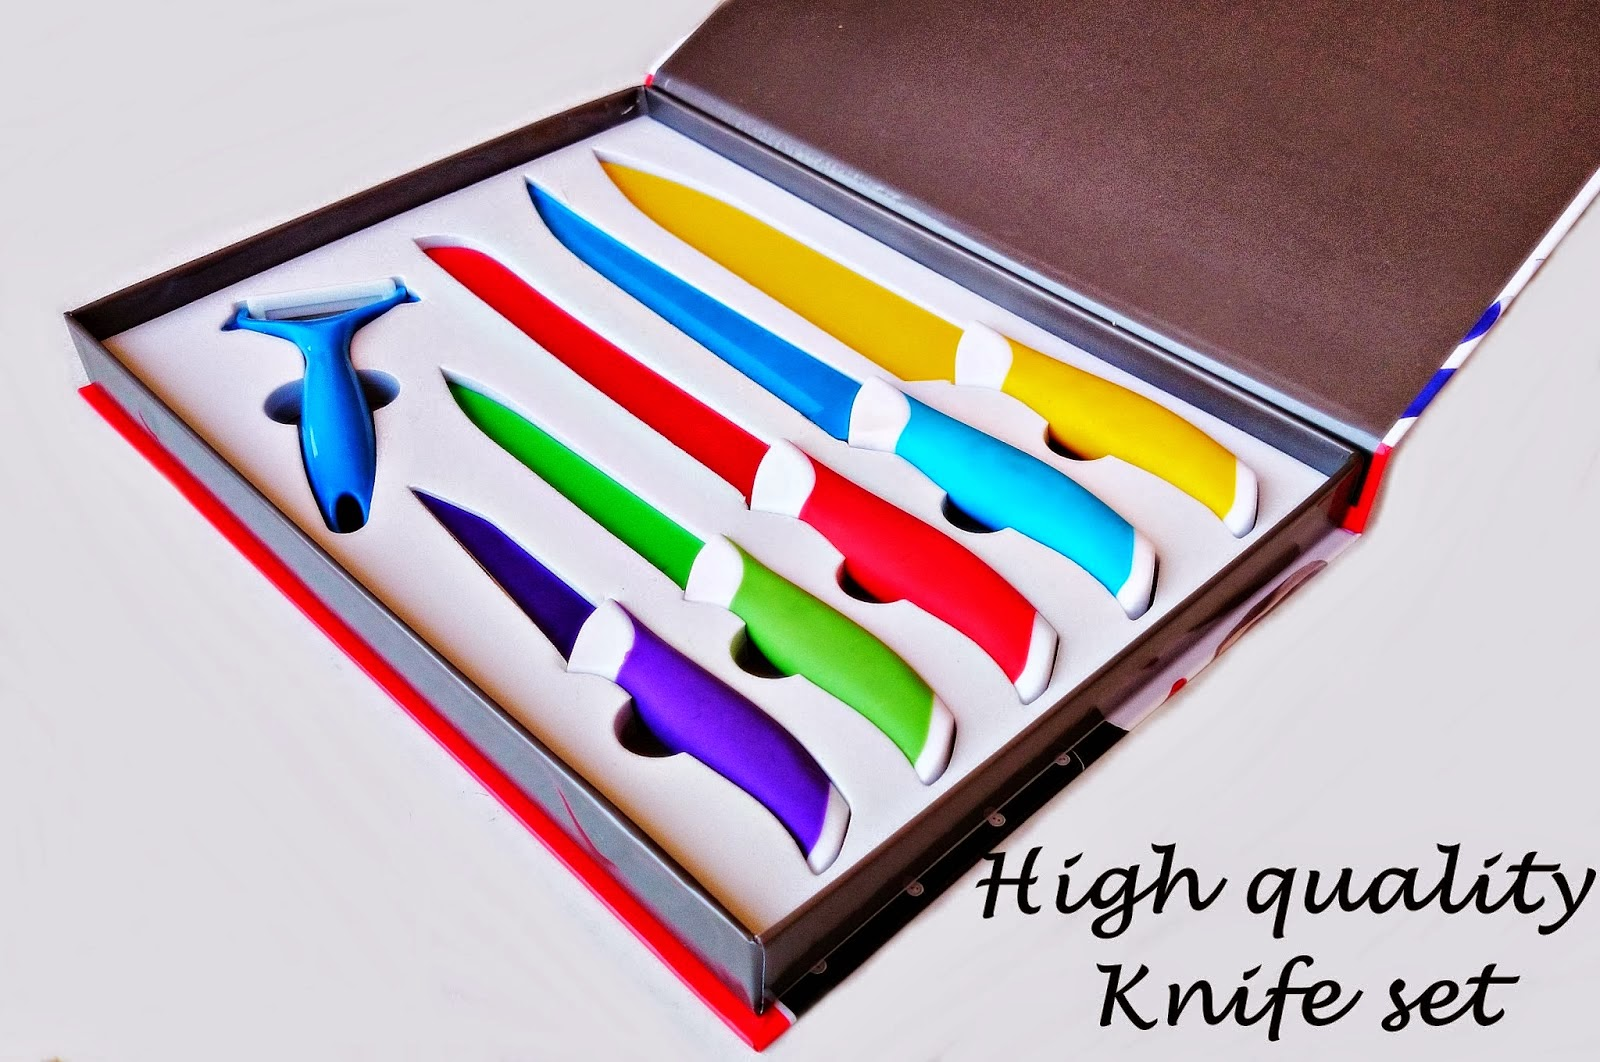 High Quantity Knife Set